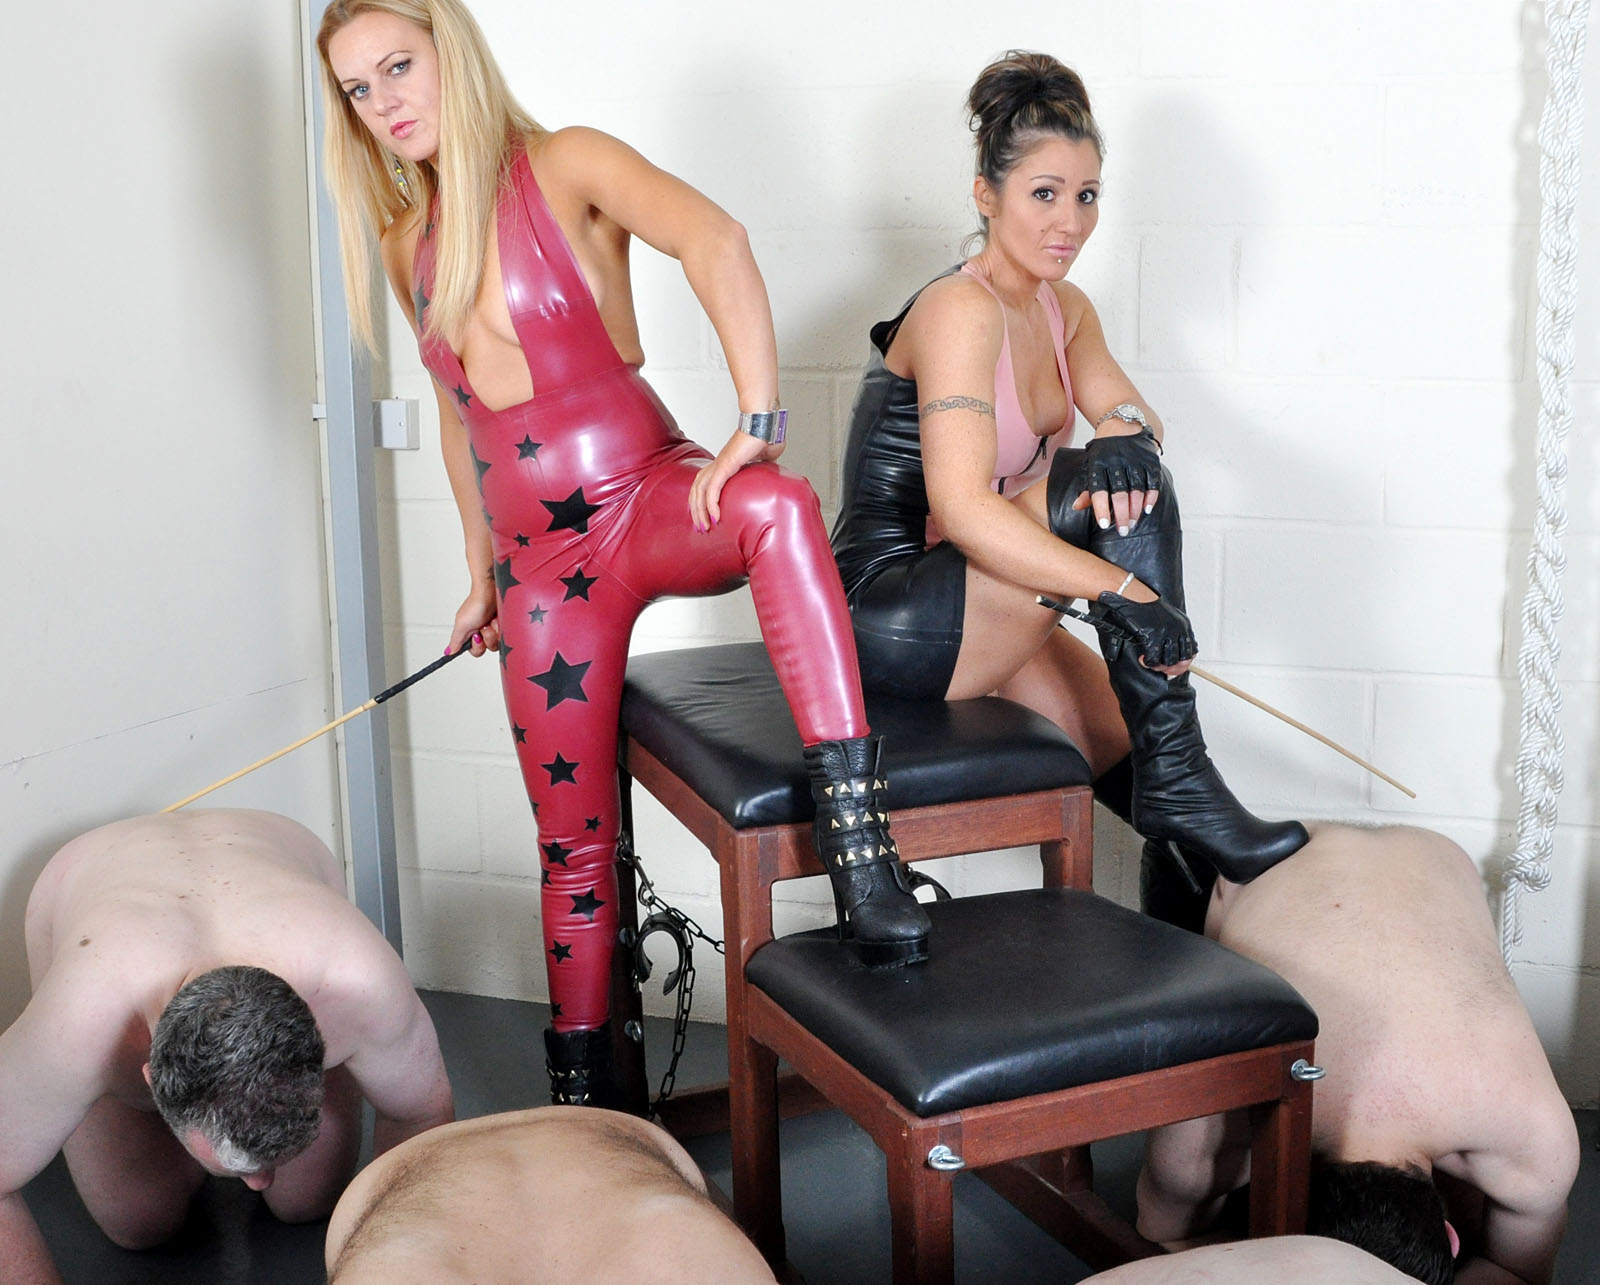 sexwebcam femdom whipping